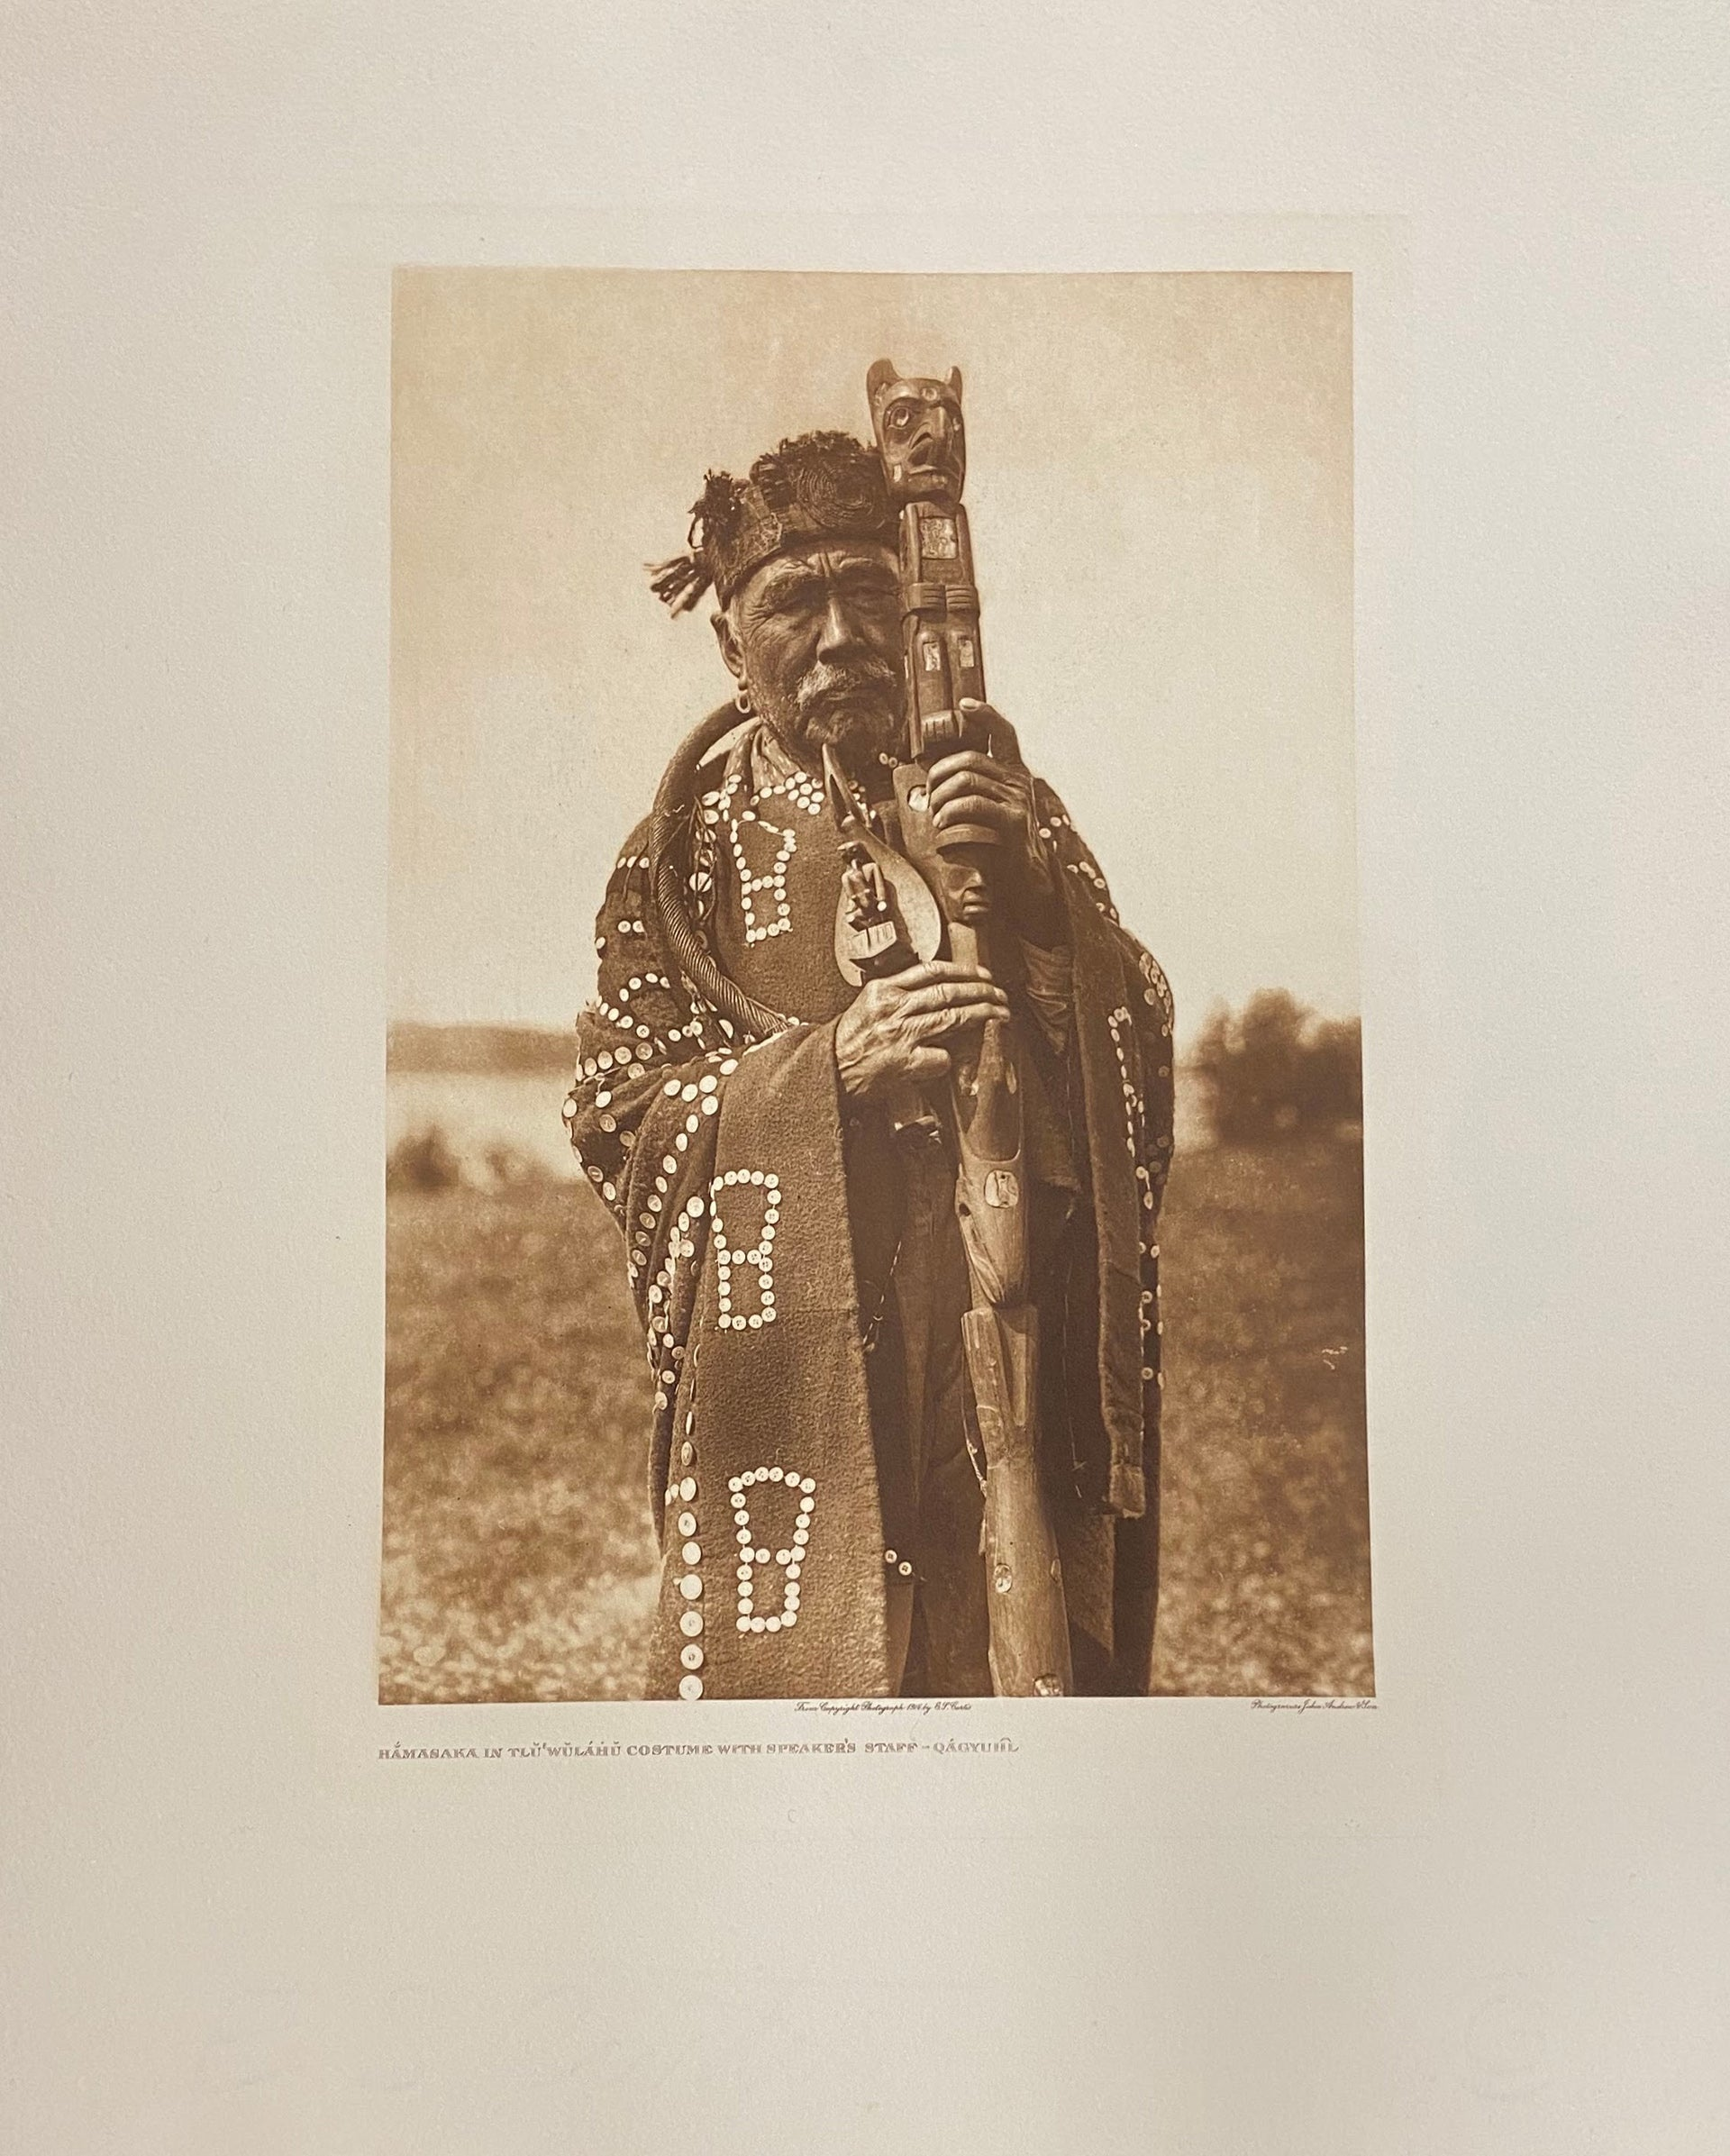 Hamasaka in Tluwulahu Costume with Speaker's Staff - Qagyuhl - Kwakiutl